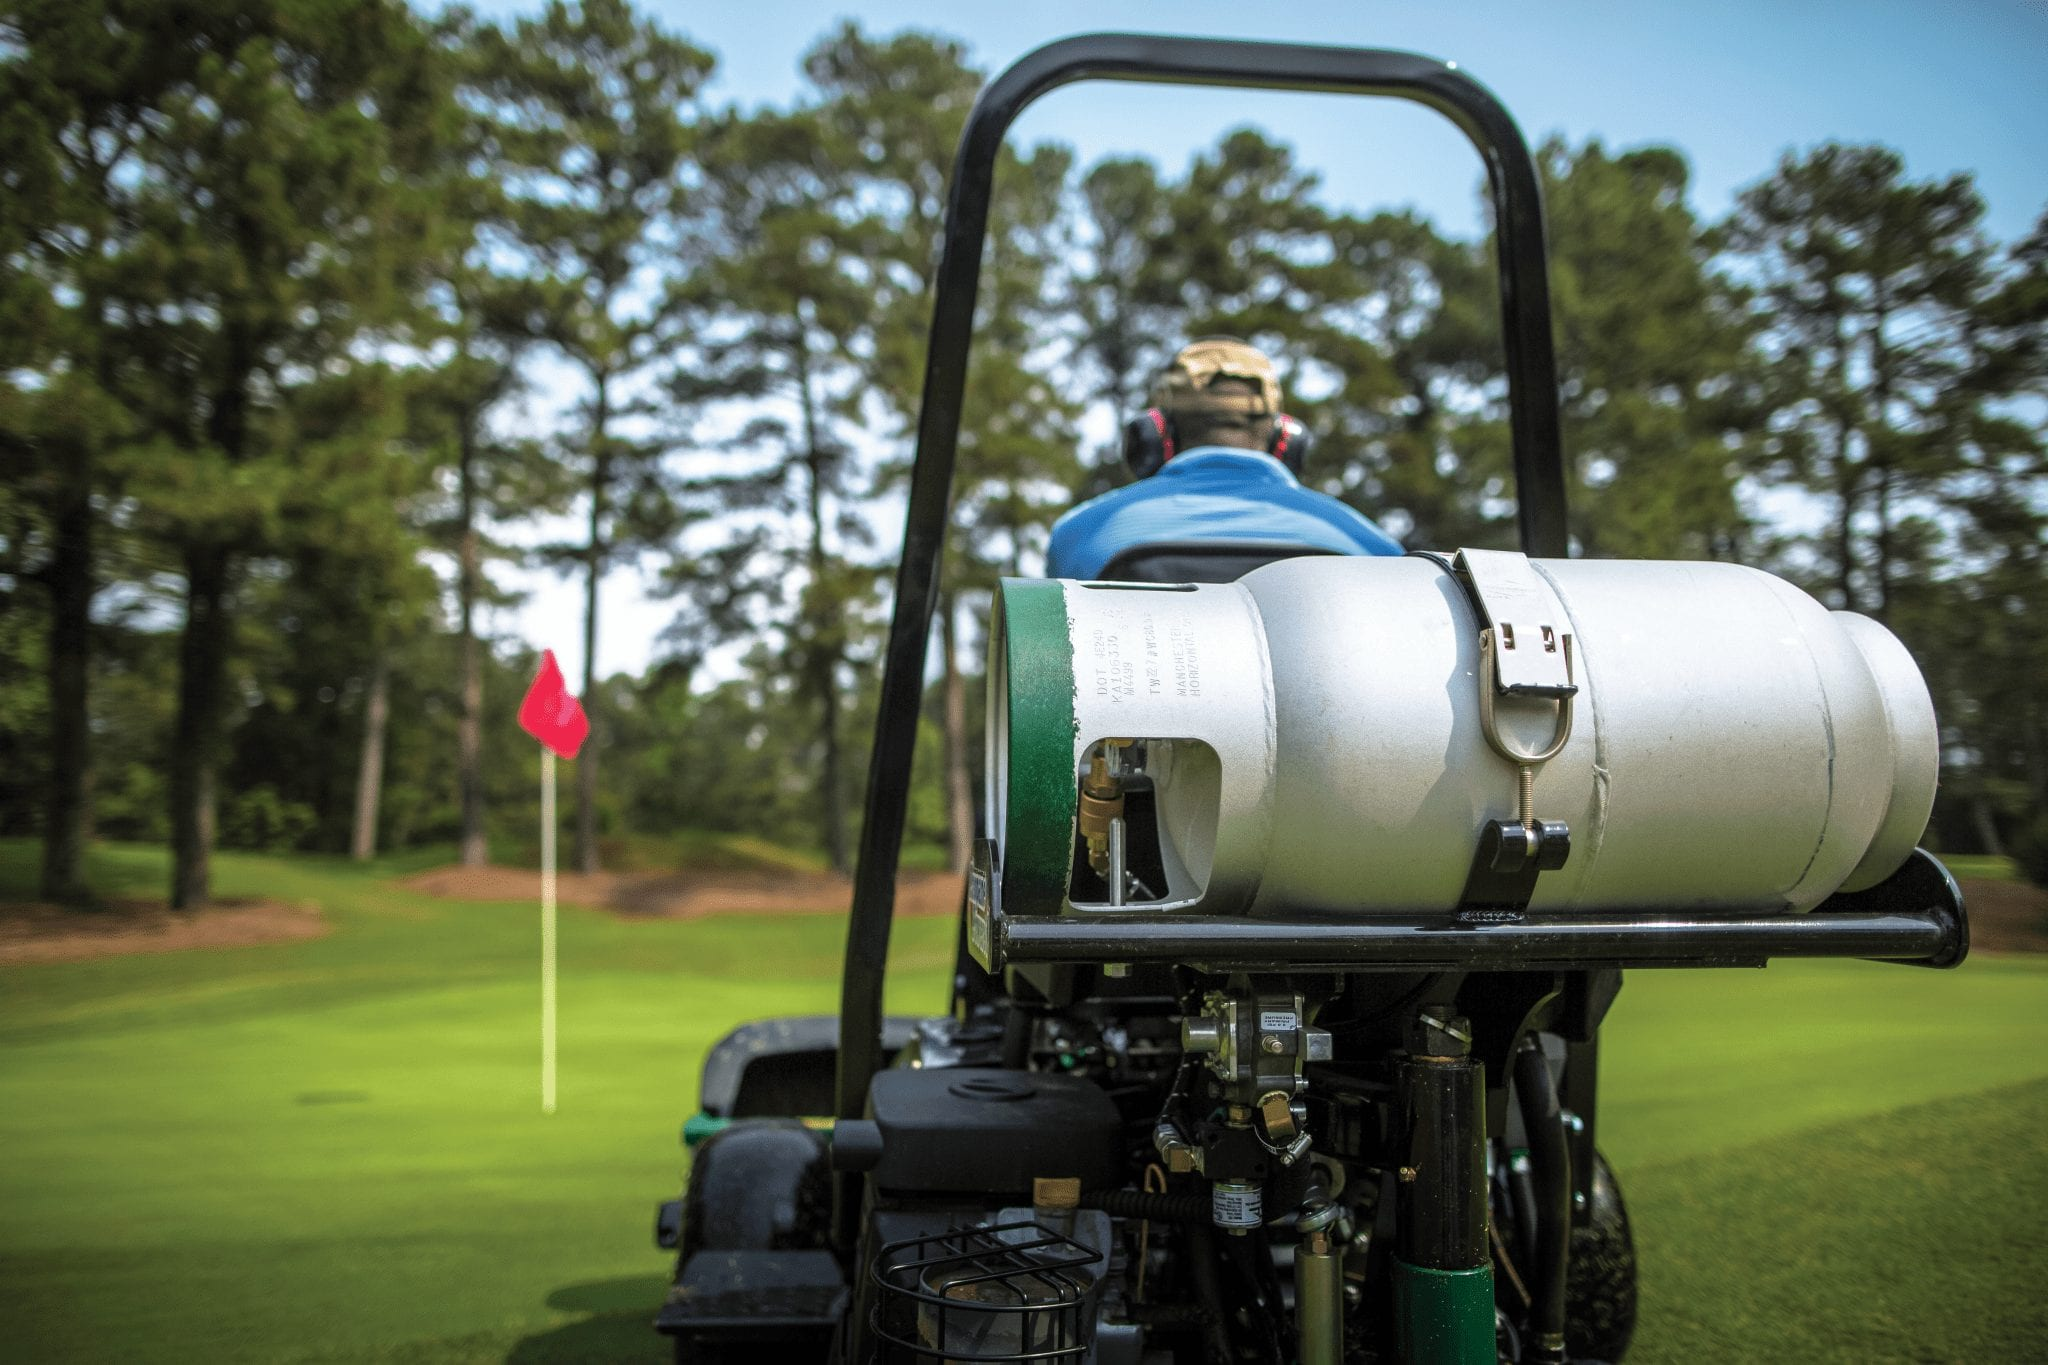 man mowing golf course with propane powered lawn mower